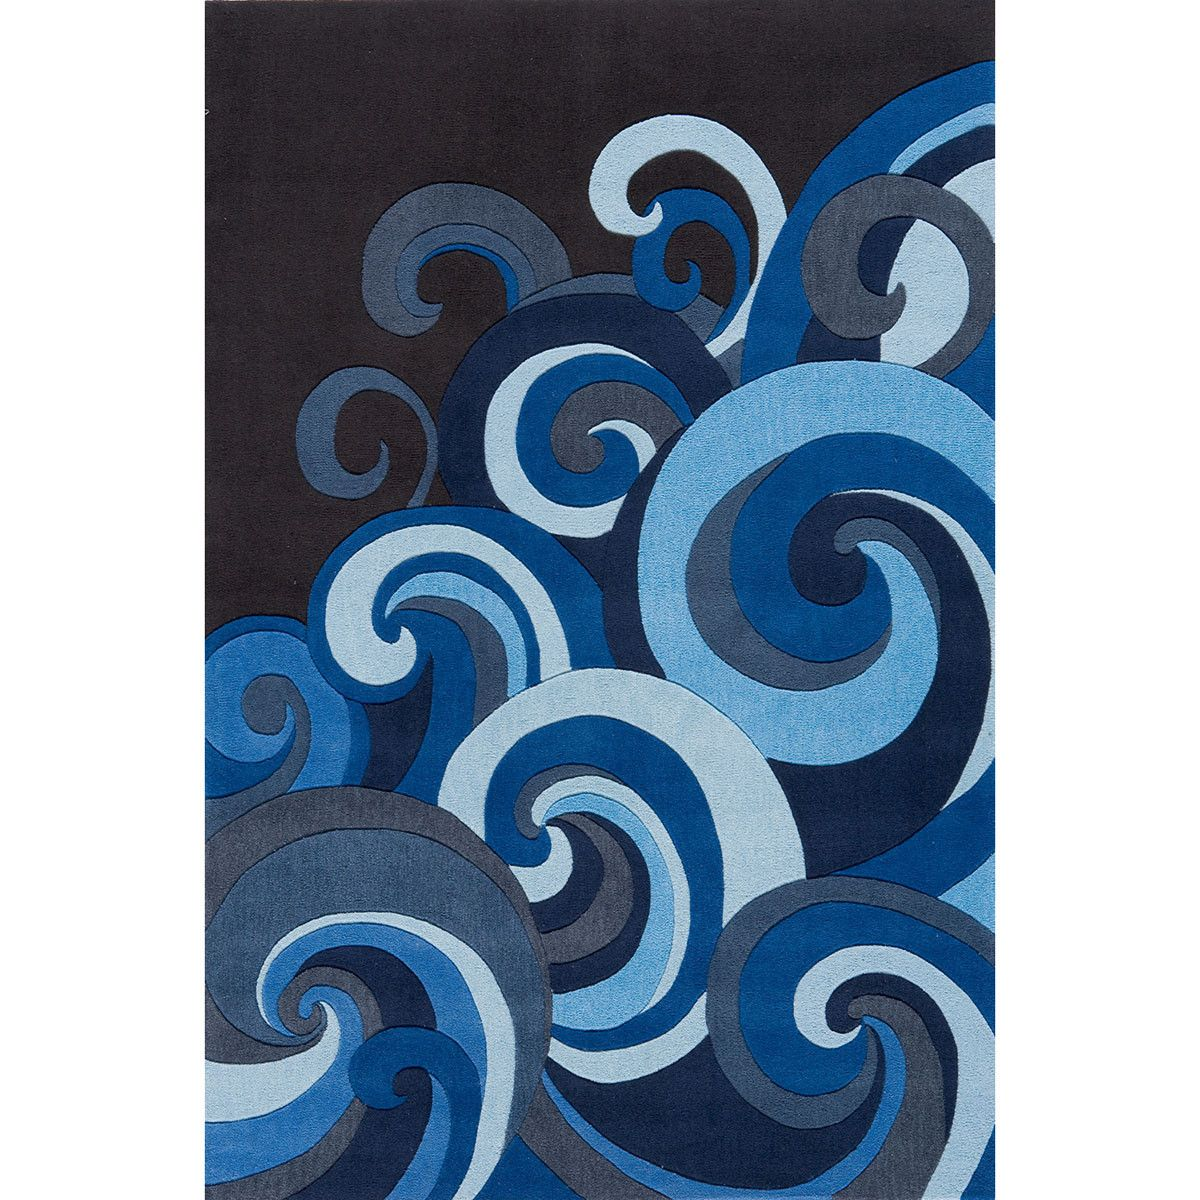 Big Blue Ocean Waves Area Rug Hand Tufted Rugs Hipster Decor